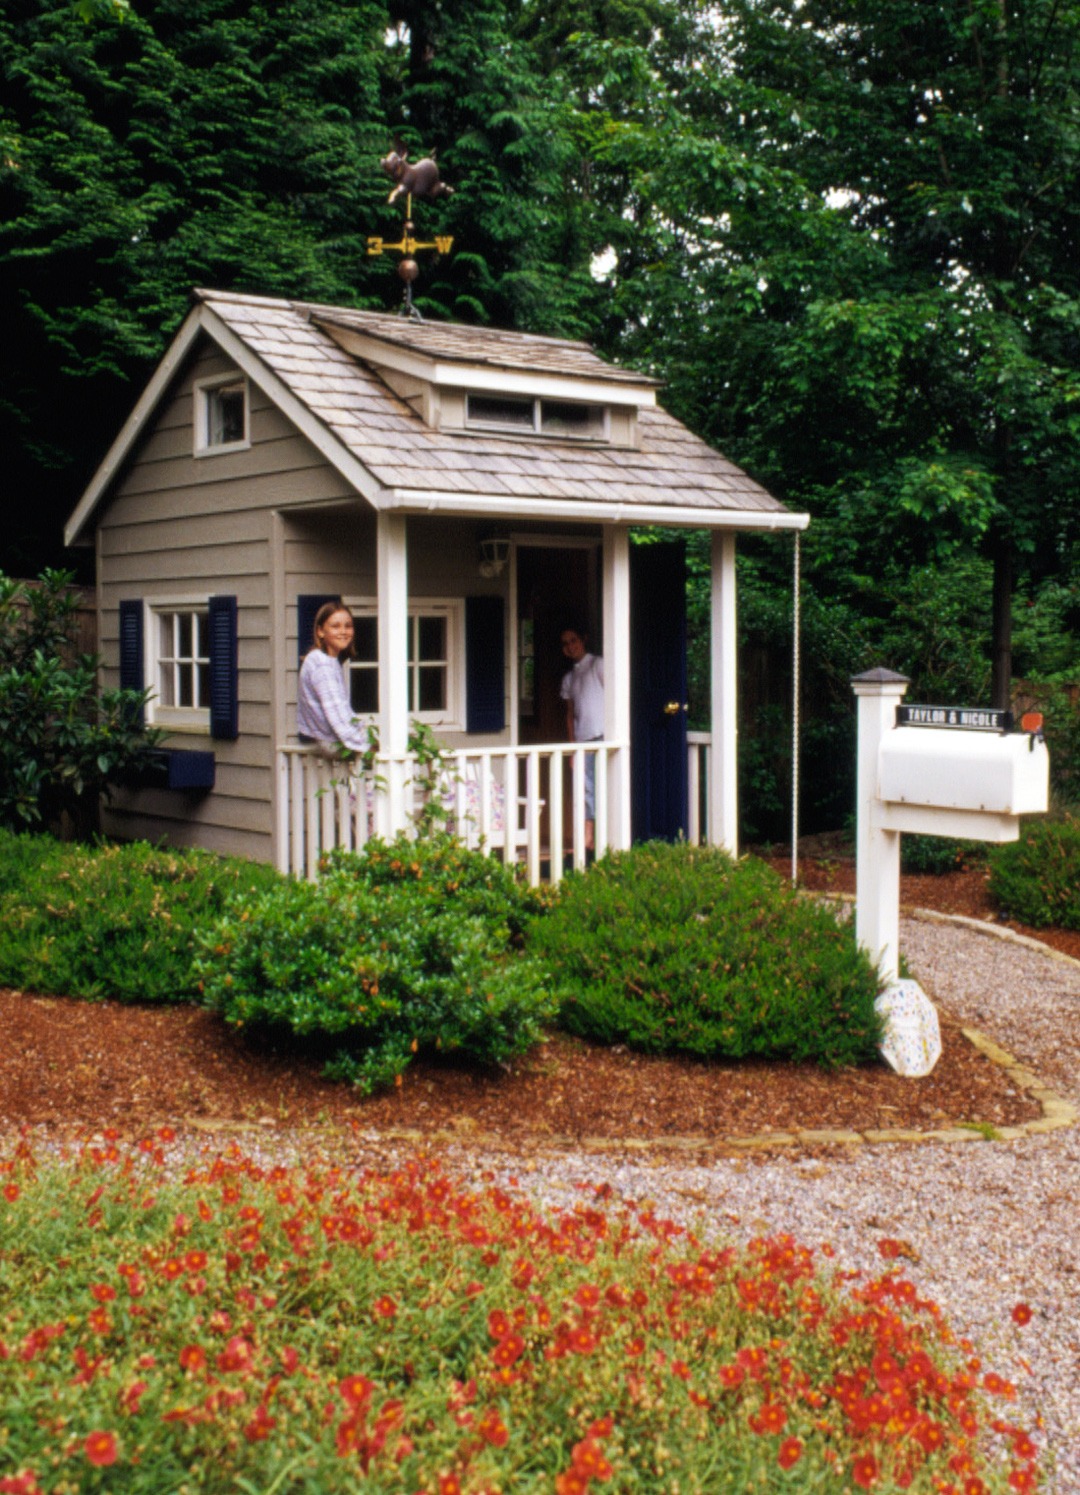 Playhouse with mailbox and shrubs